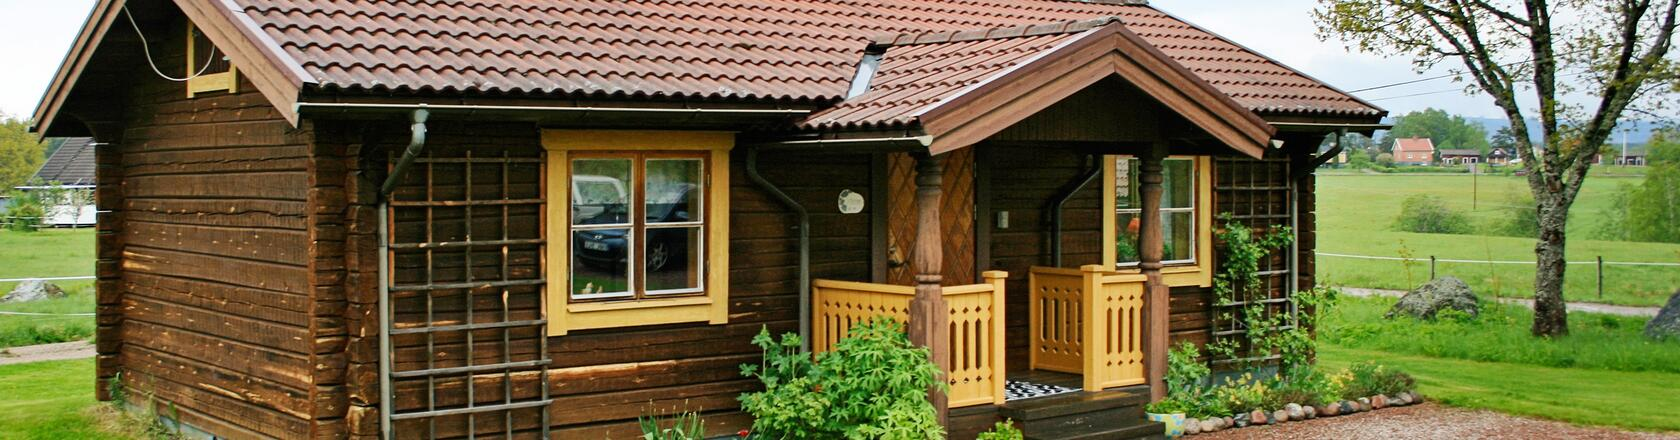 Leksand in Sweden - Rent a holiday home in with DanCenter